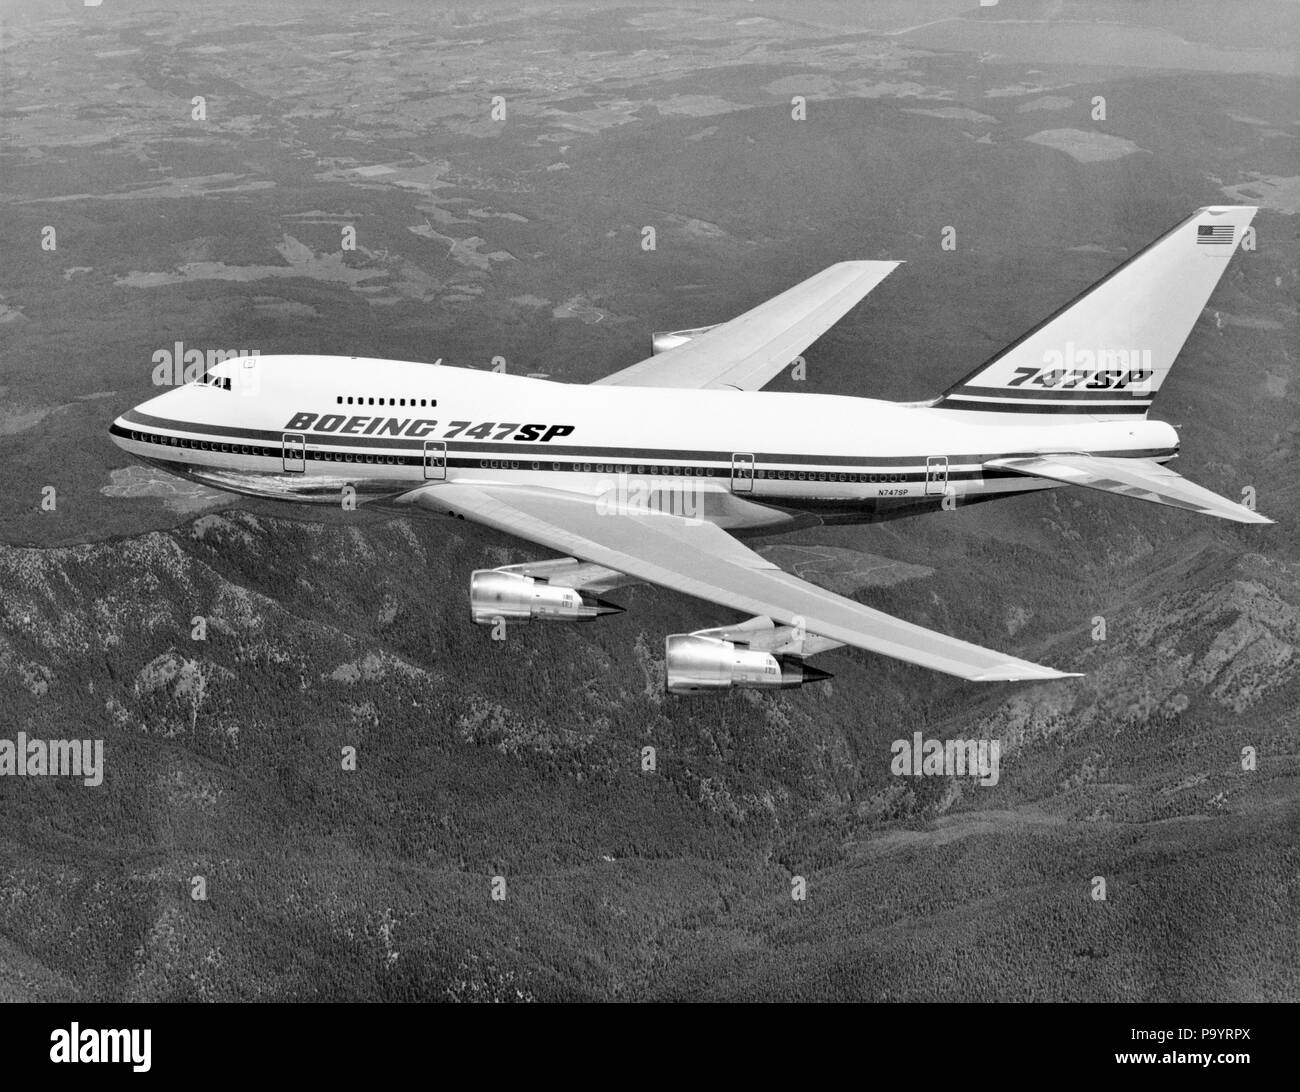 1970s BOEING 747 SP JET AIRPLANE IN FLIGHT - a8479 HAR001 HARS OLD FASHIONED - Stock Image